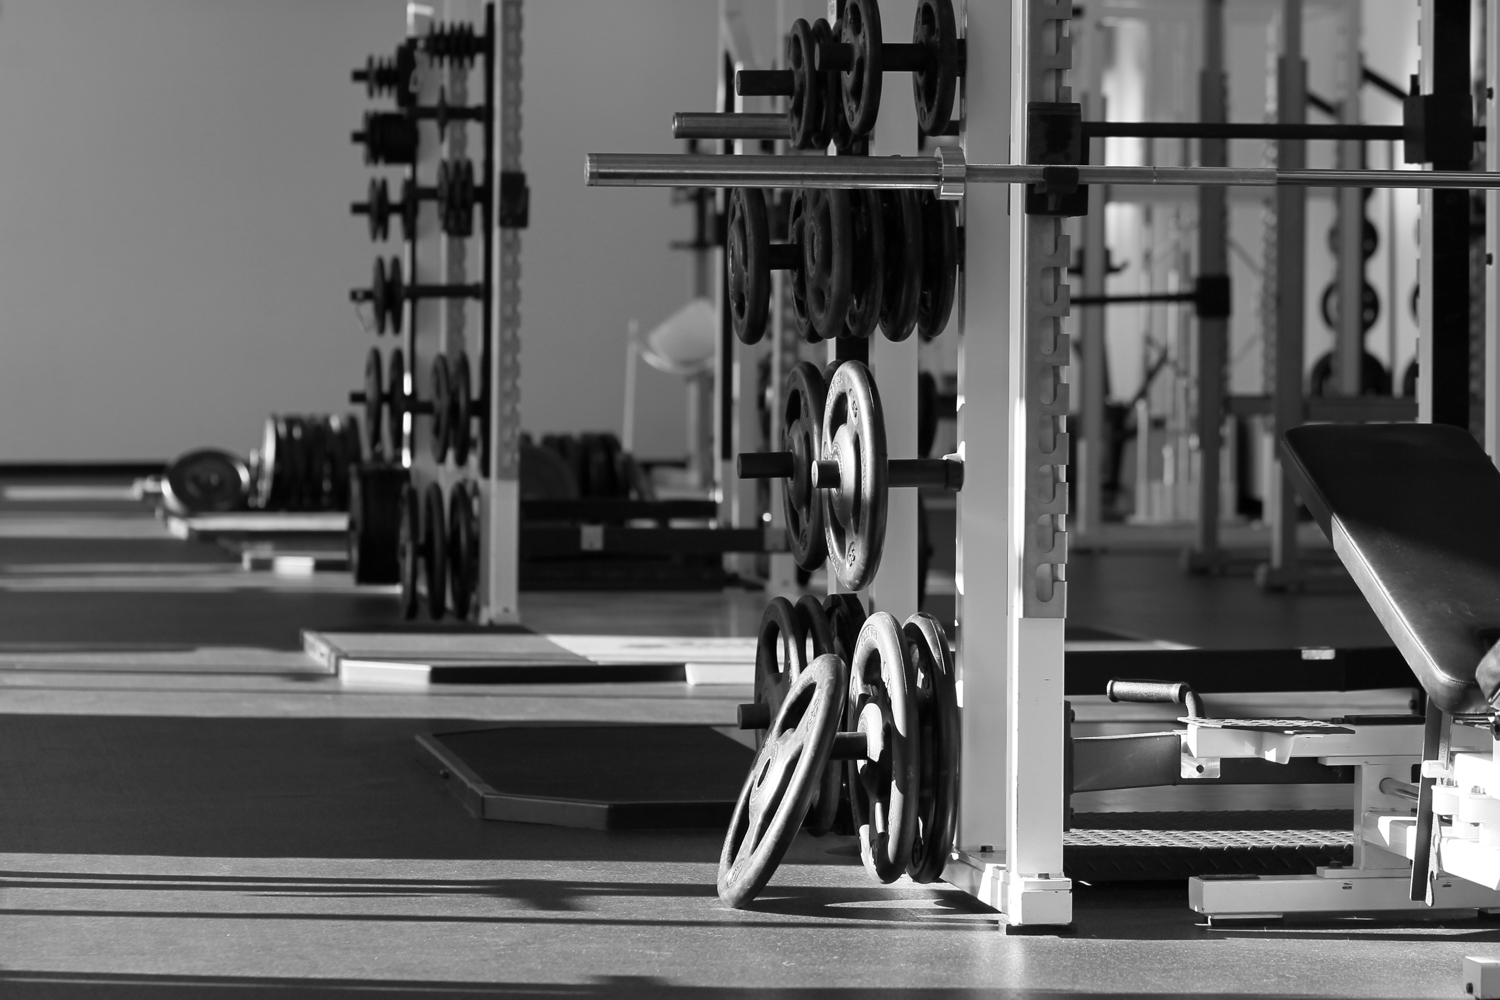 Power/Squat Racks & Equipment